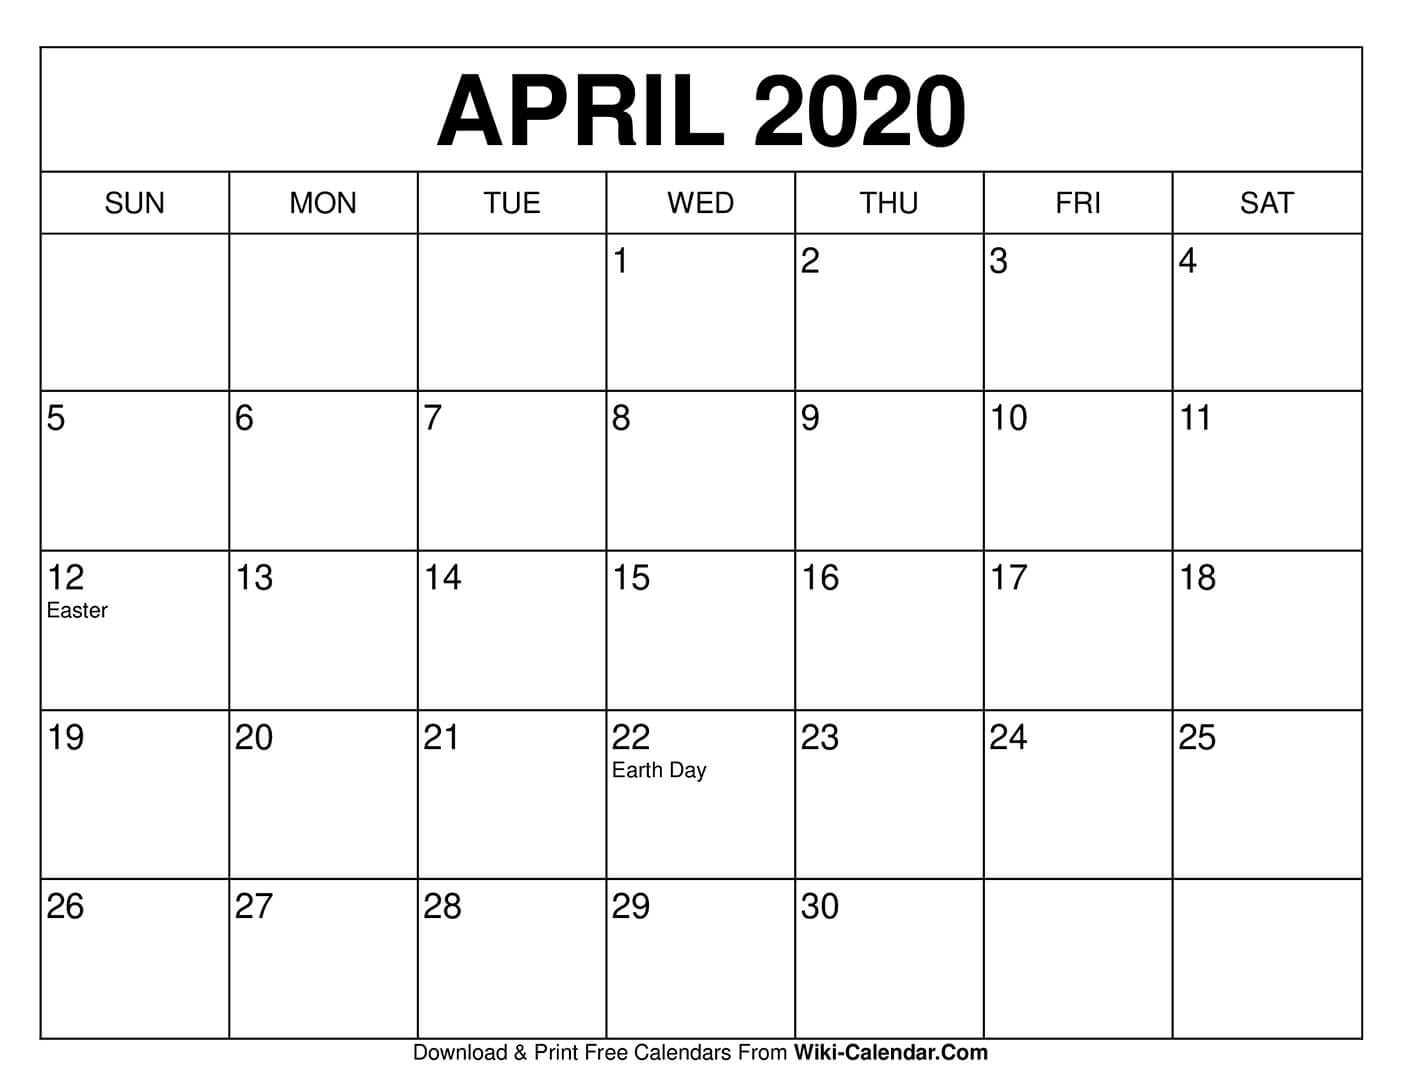 Free Printable April 2020 Calendars within Online Free Printable Calendar 2020